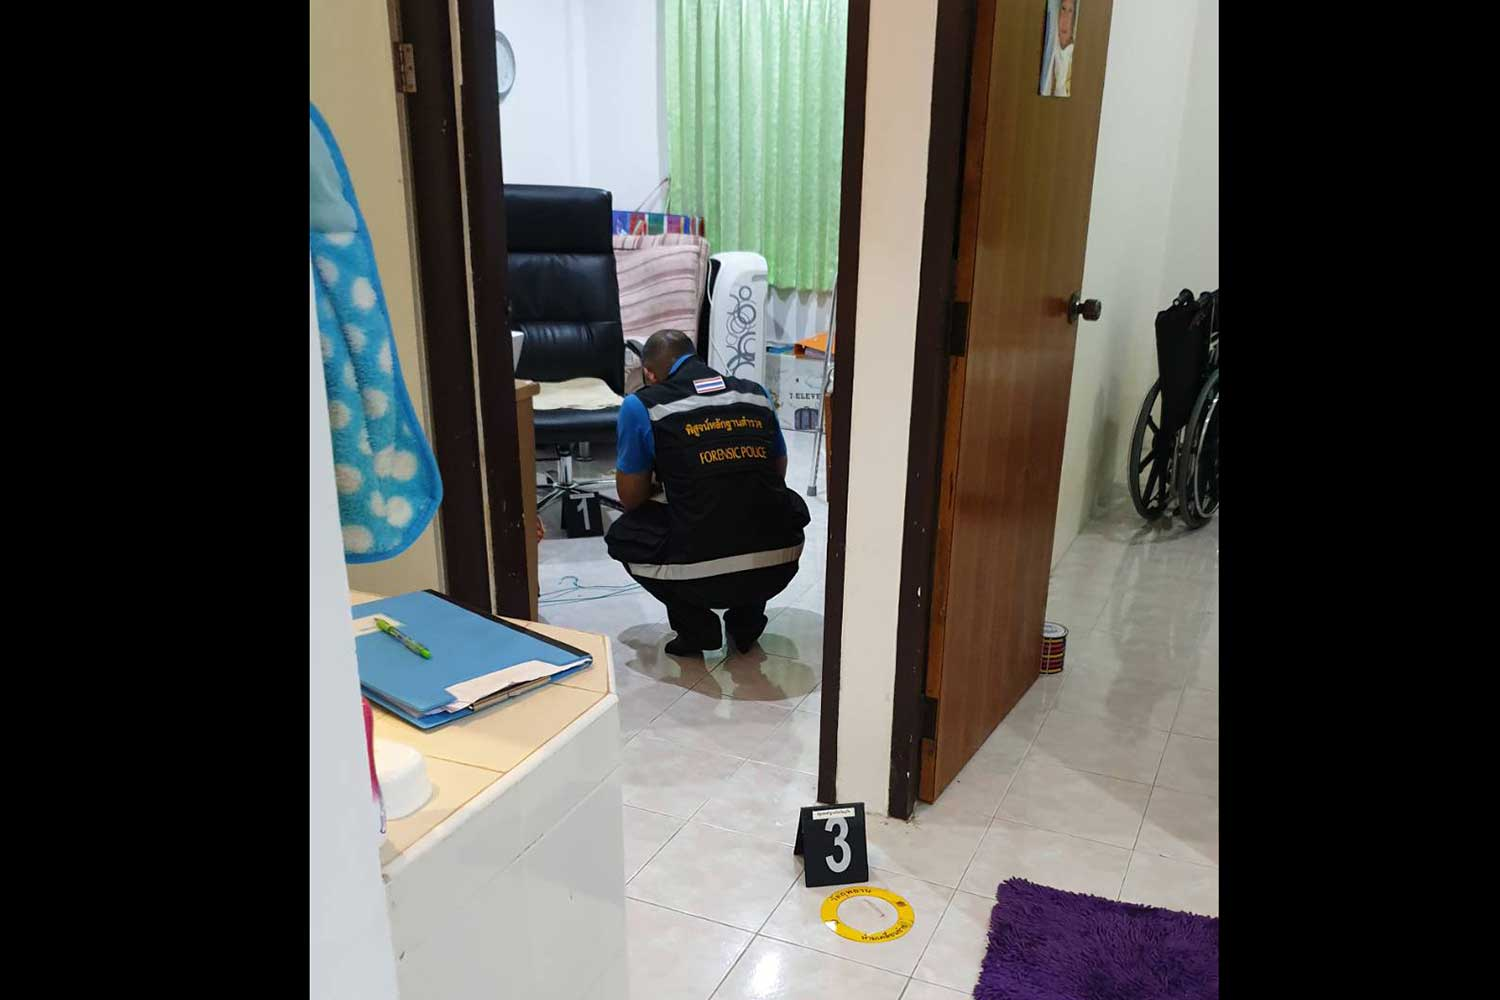 A forensic officer examines the scene of the robbery at the house where a German man was tied up and cut by two men who robbed him and his Thai wife in Muang Phuket on Thursday evening. (Photo supplied)